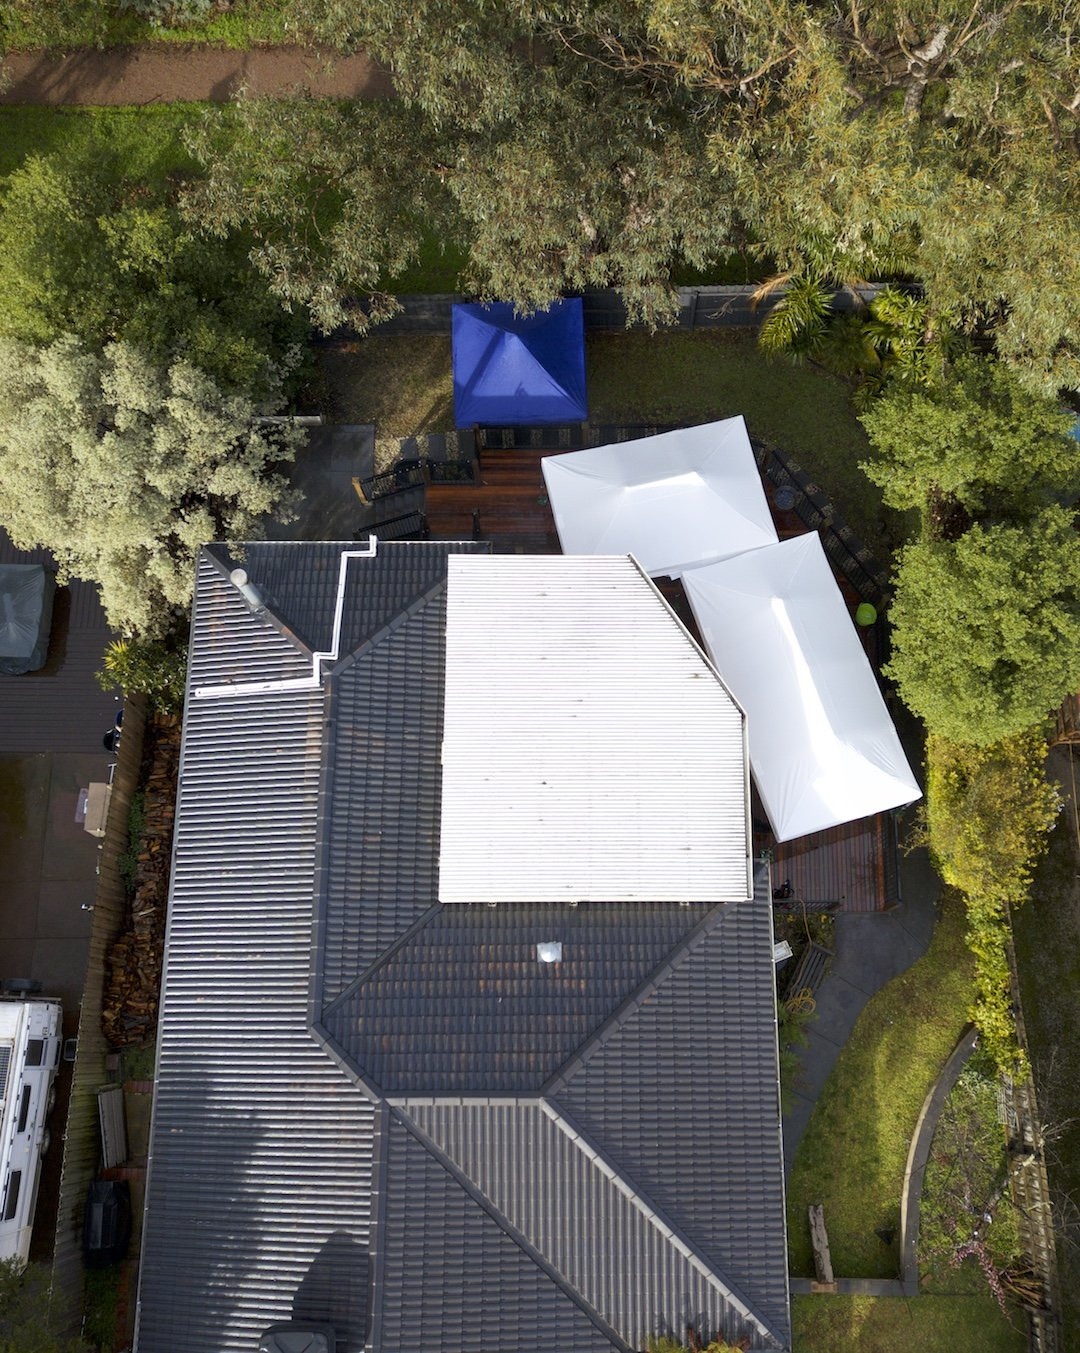 Altegra event marquees can be set up to cover backyard events in all shapes - white 3x6m marquee and 3x4.5m gazebo on a deck.